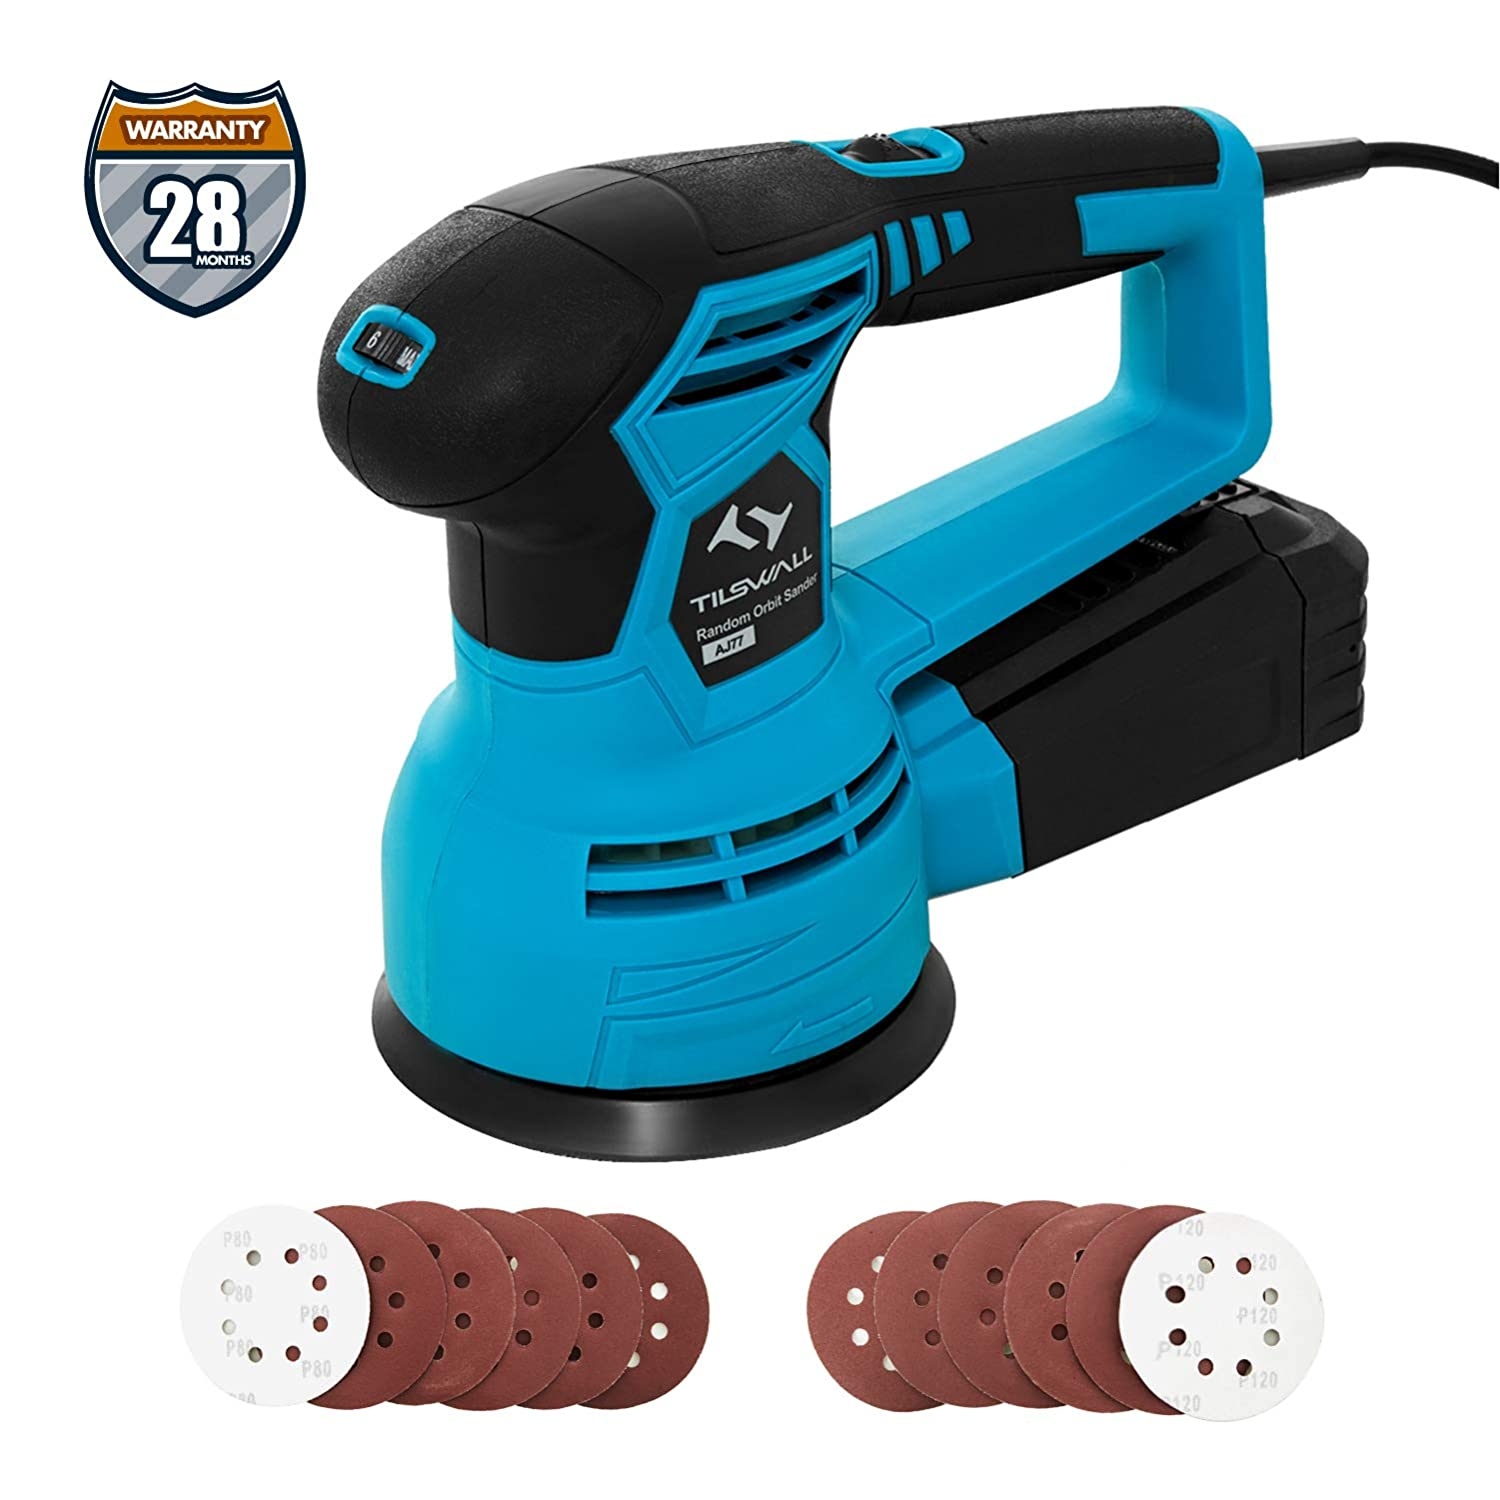 Polishing Wood Orbital Sander High Perfermance Dust Collection System Tilswall 450W 6 Variable Speed 12000RPM 125mm Sander Machine with 12Pcs Sandpapers Less Vibration for Sanding